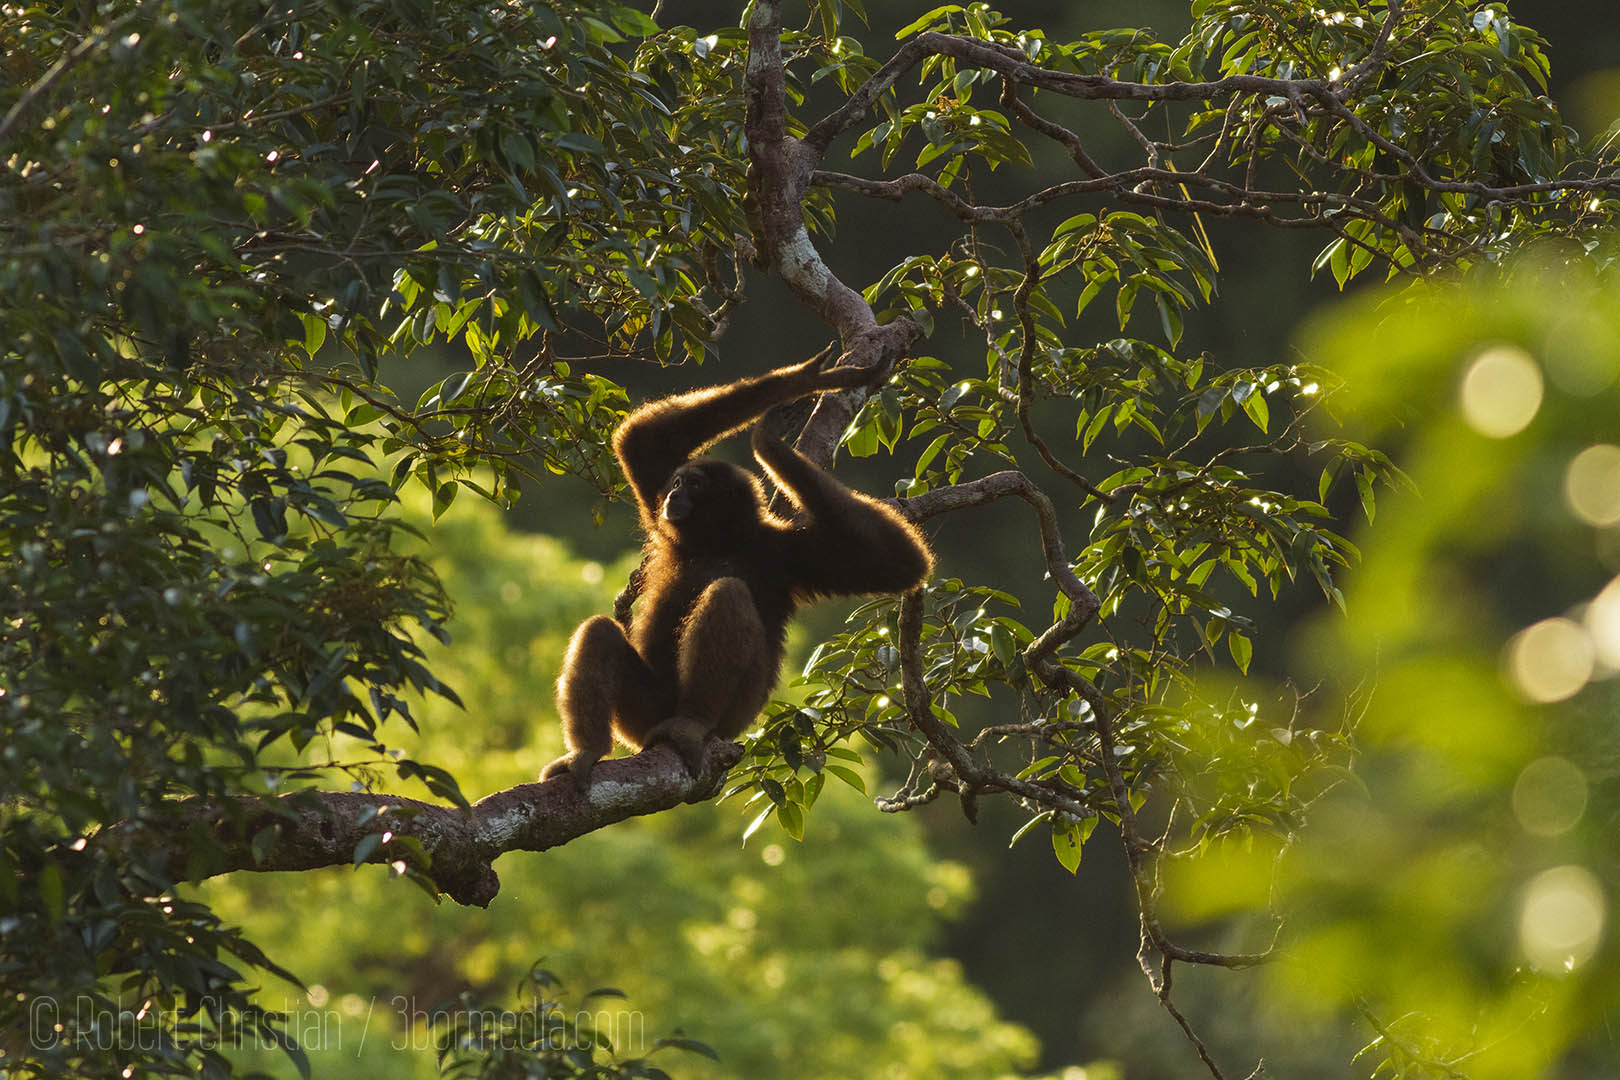 A Bornean Gibbon in the treetops of Ulu Temburong.